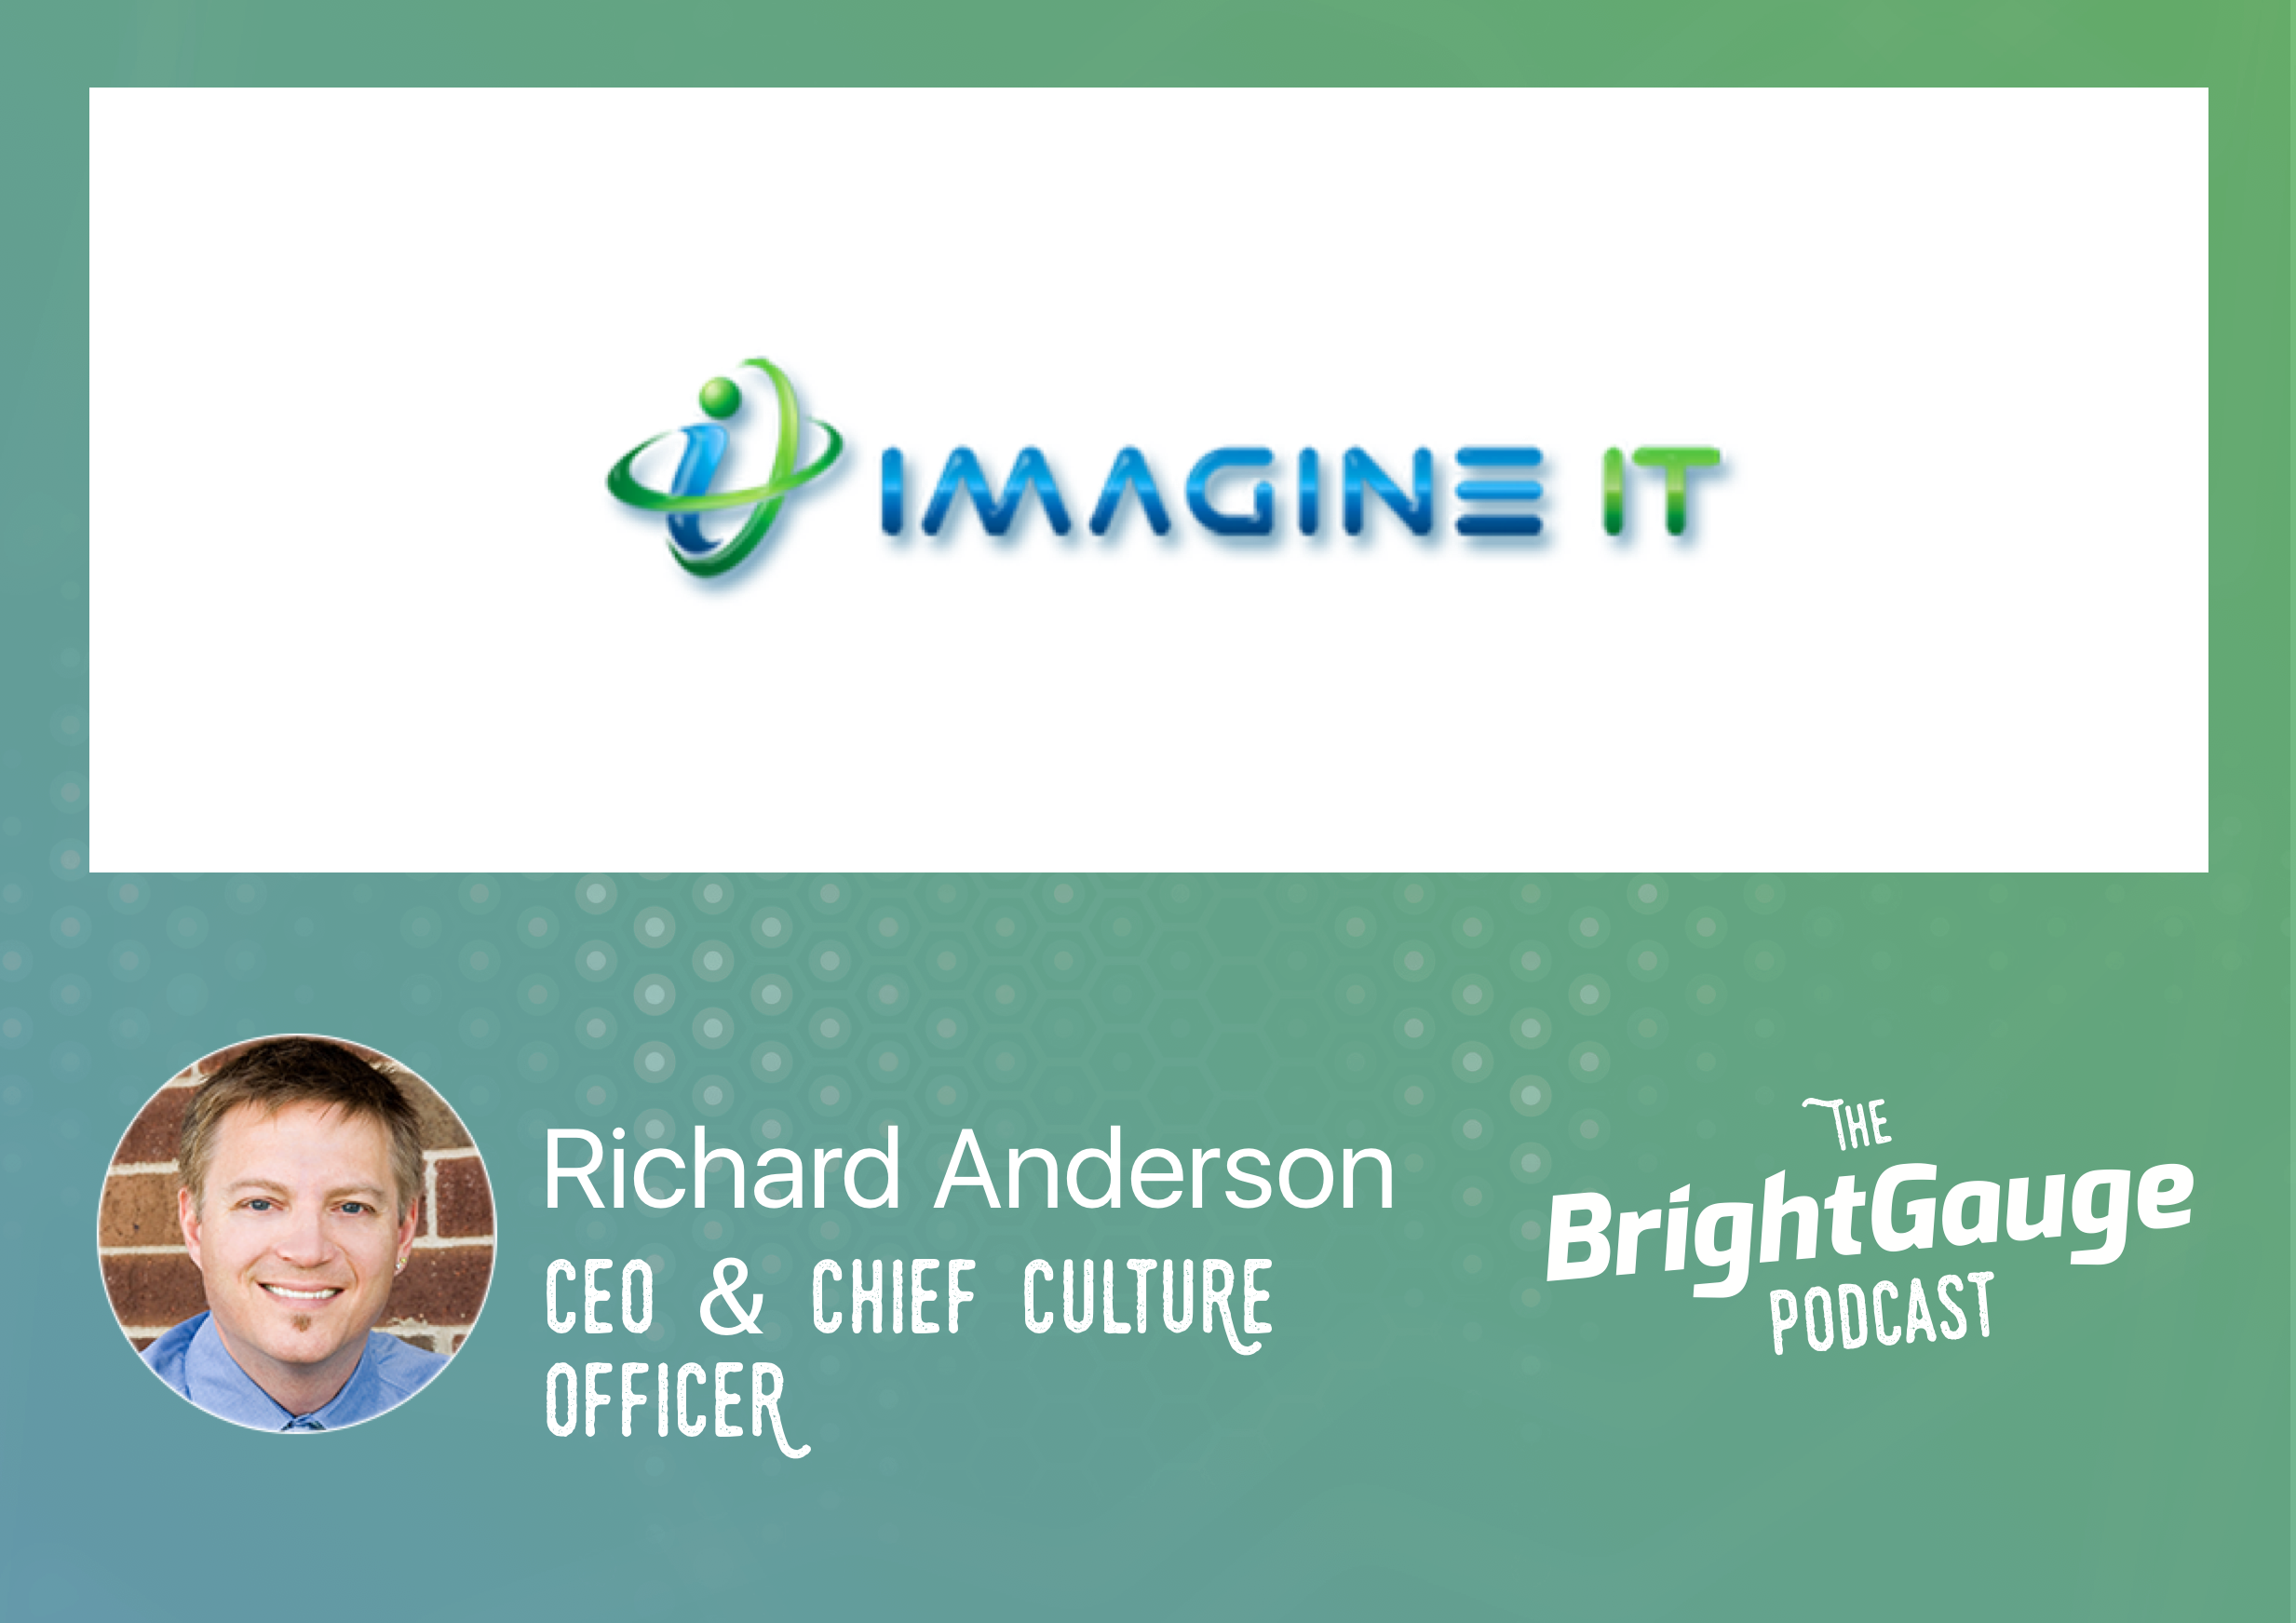 [Podcast]: Episode 12 with Richard Anderson of Imagine IT